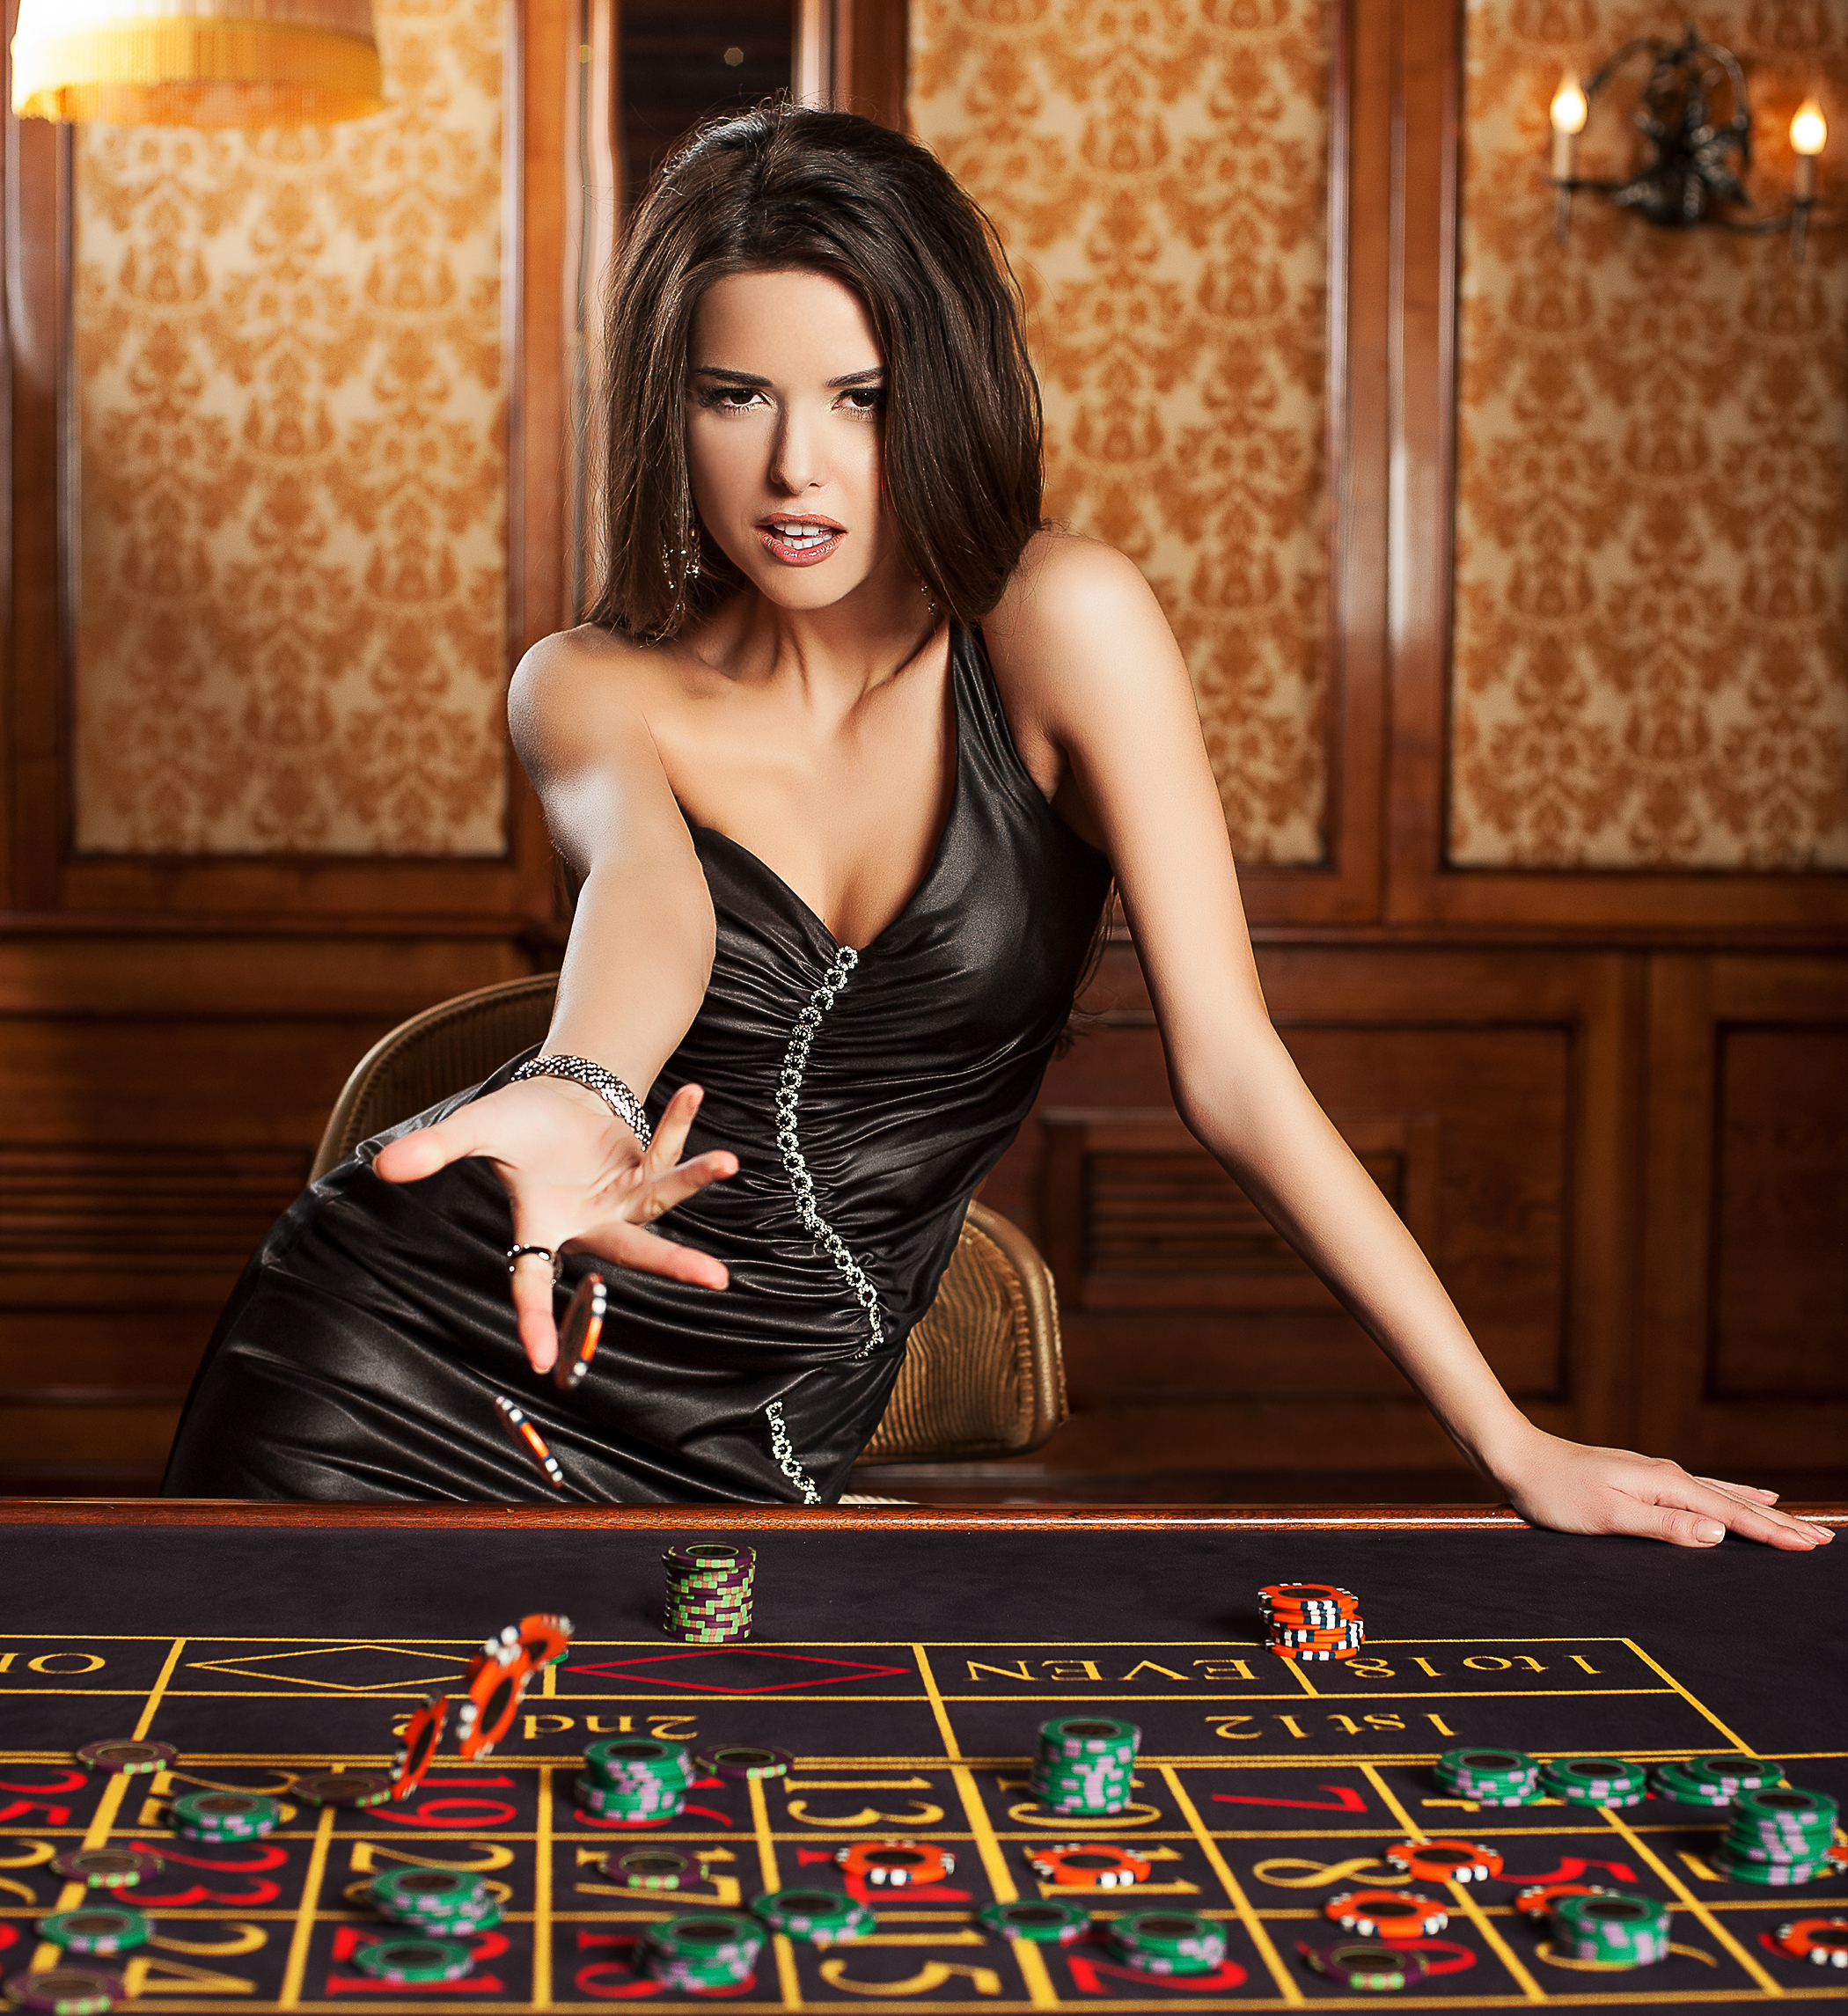 6pm shared wife casino queen play for free casino slots online